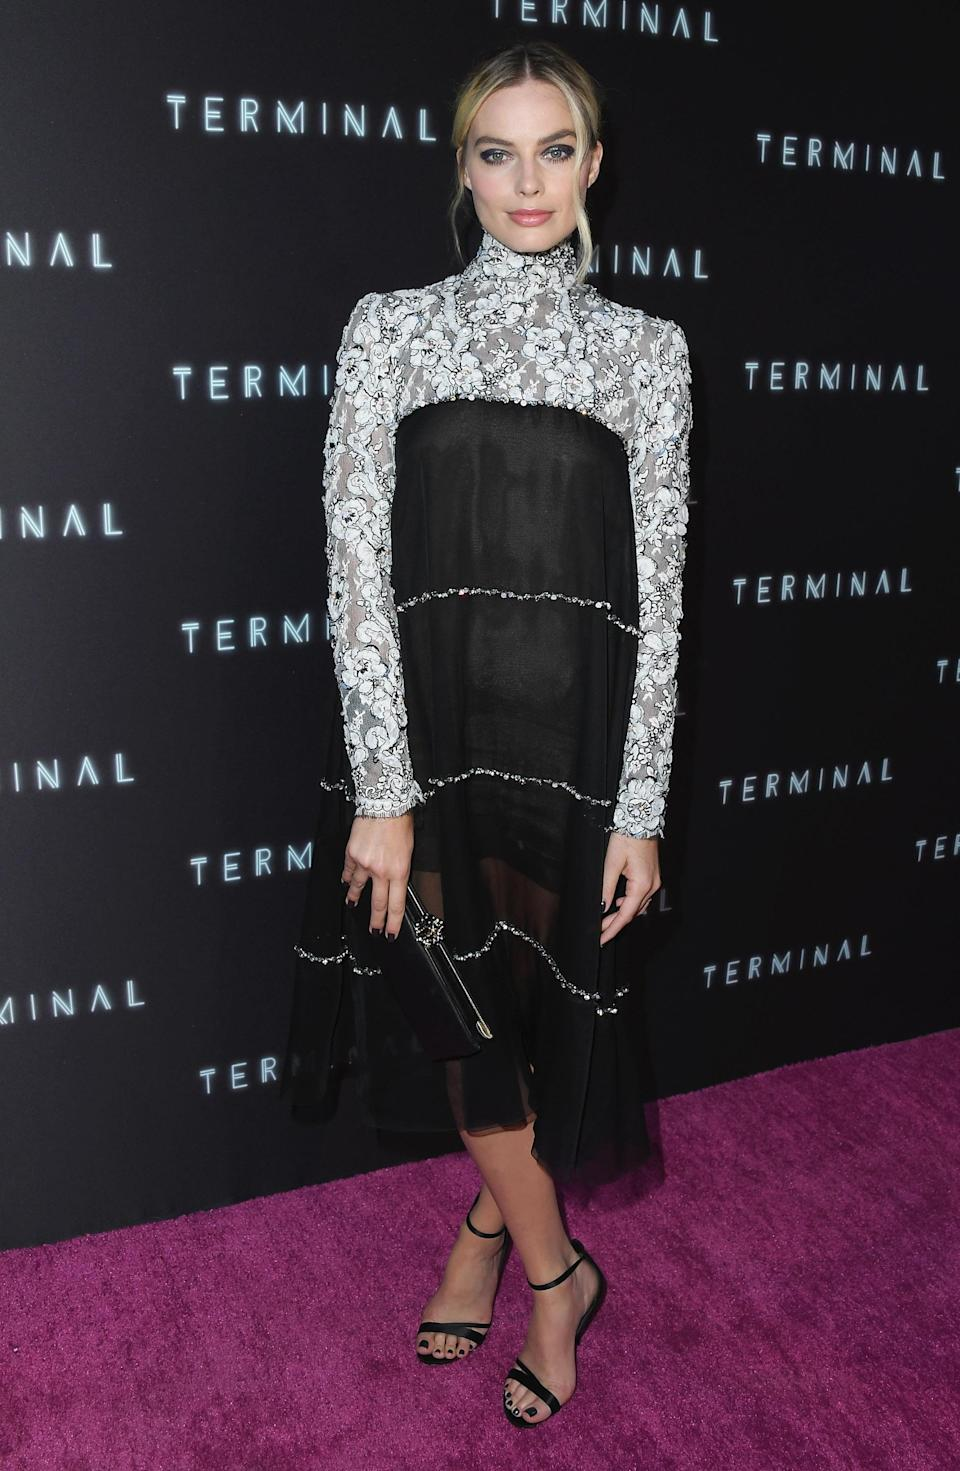 <p>Brand spanking new brand ambassador Margot Robbie made a good case for Chanel, wearing a dress from their autumn/winter 2018 collection. The sheer lace bottom with white floral appliqué sleeves looked gorgeously elegant on the actress.<br><em>[Photo: Getty]</em> </p>